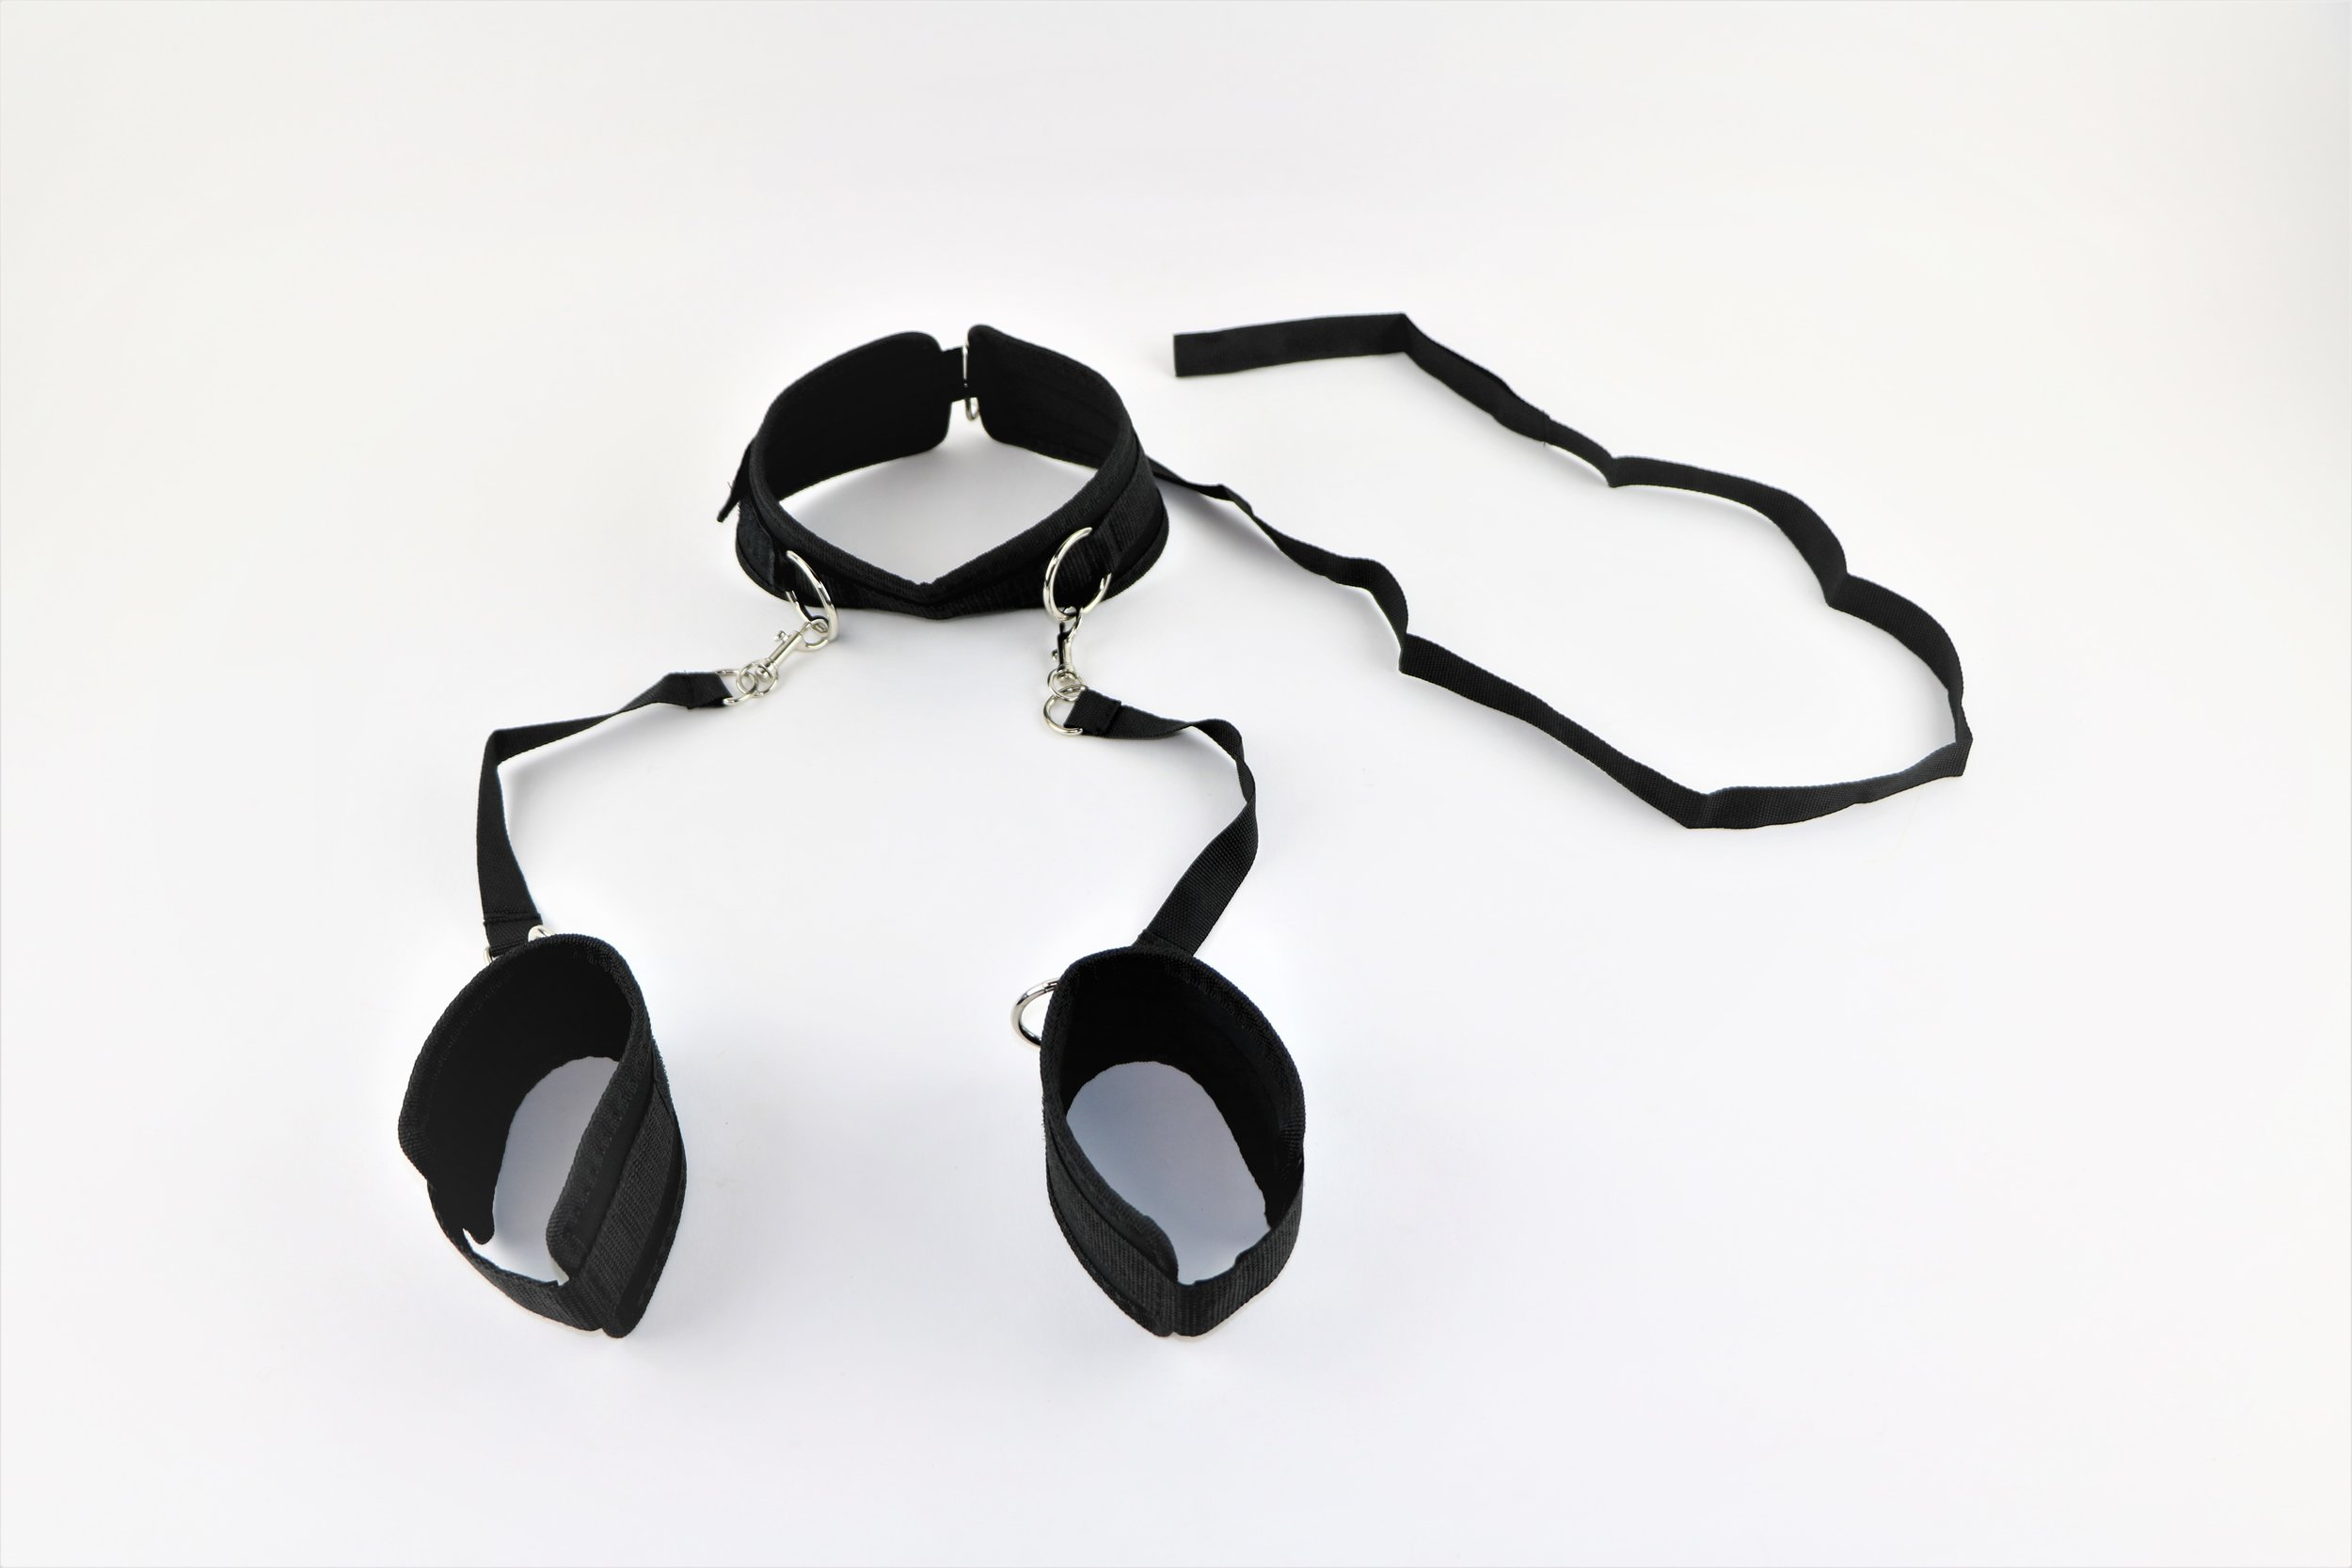 Nylon Collar W/ Arm Restraints and Leash! - Submissive, Domination, Mature  BDSM, Roleplay, Bitch